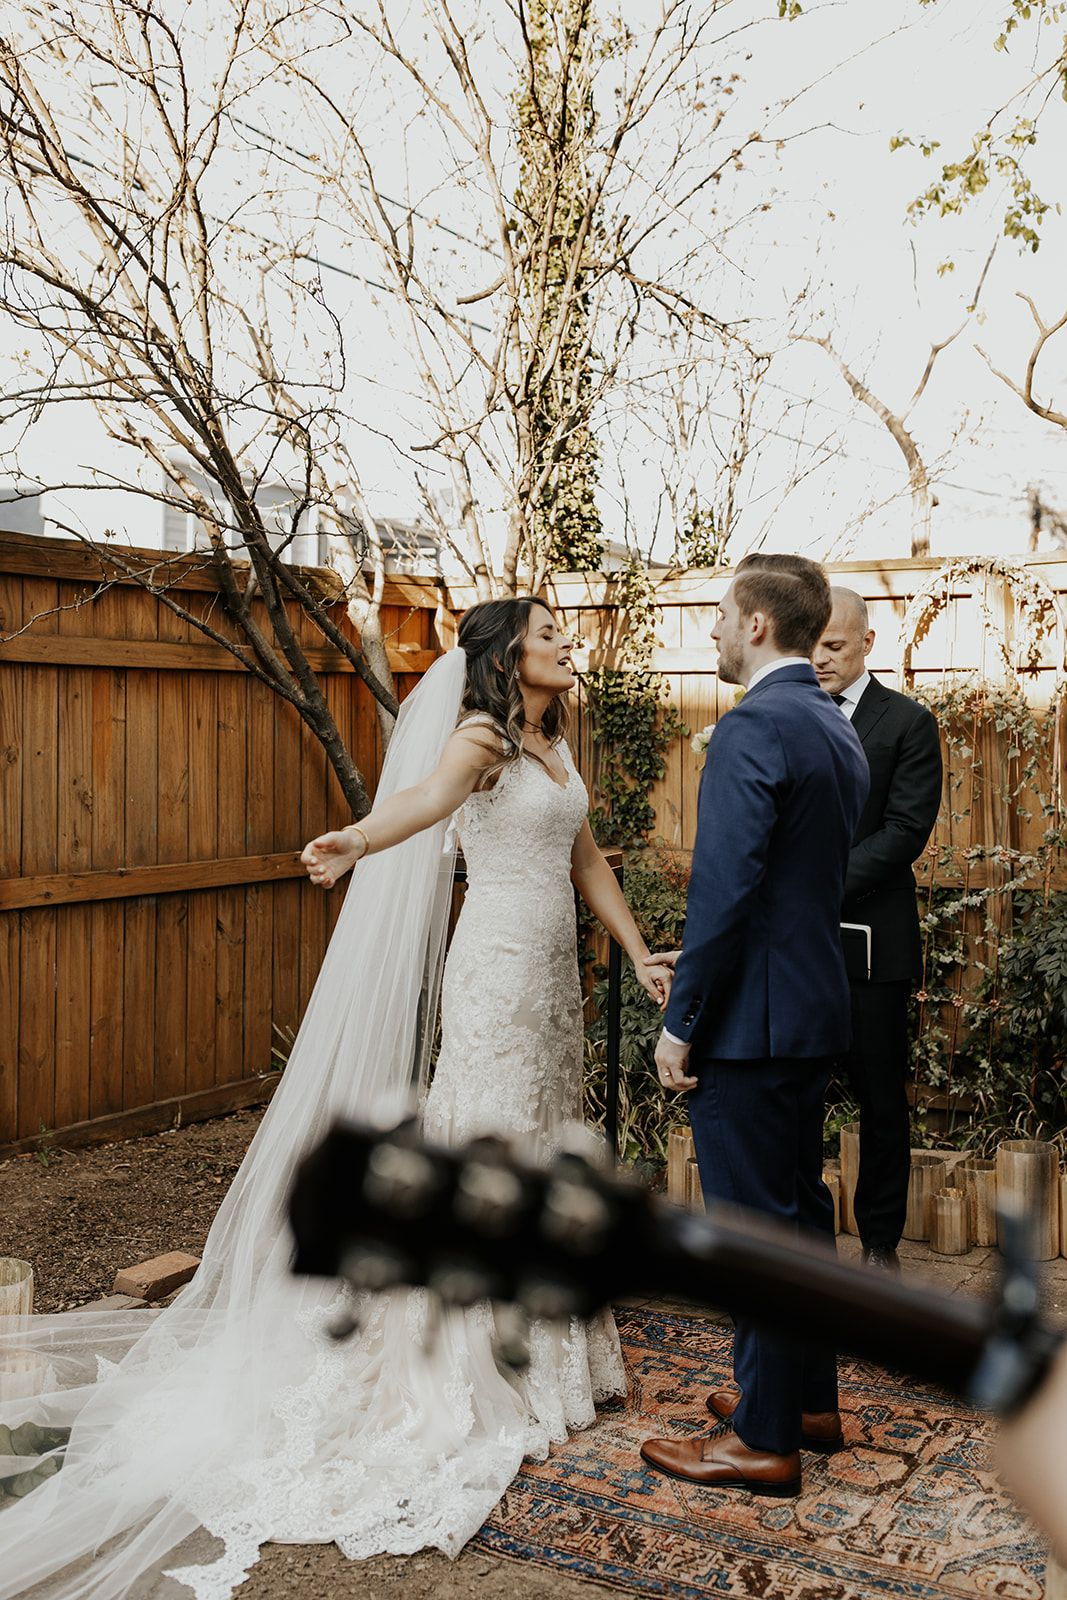 How to Choose Christian Wedding Ceremony Music Christian